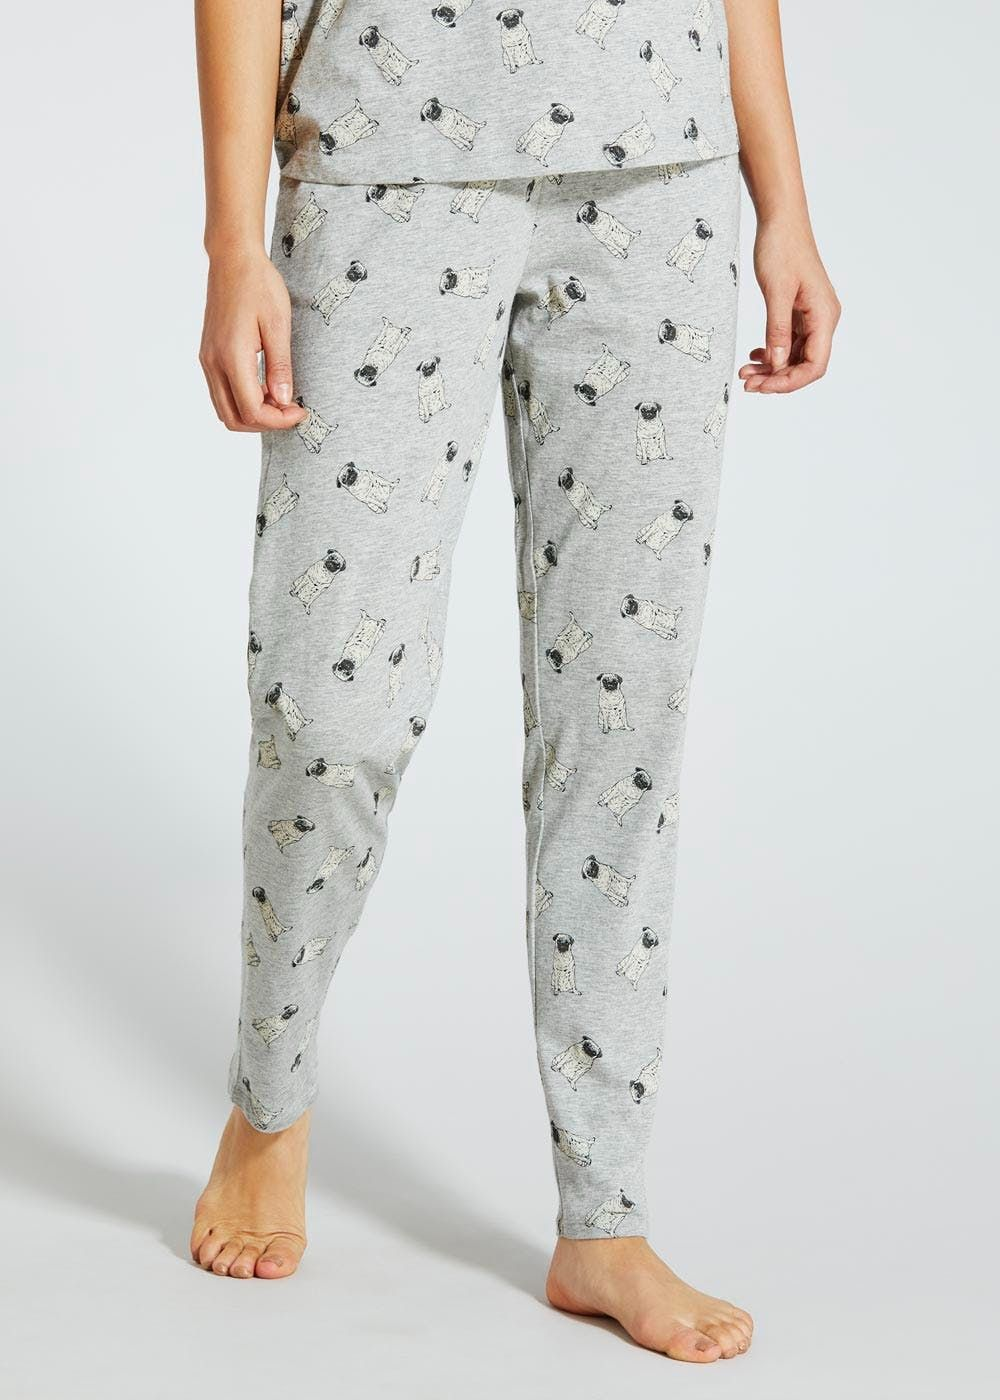 f49d512542 Pyjama bottoms in grey marl with a pug all over print. Featuring an  elasticated waist